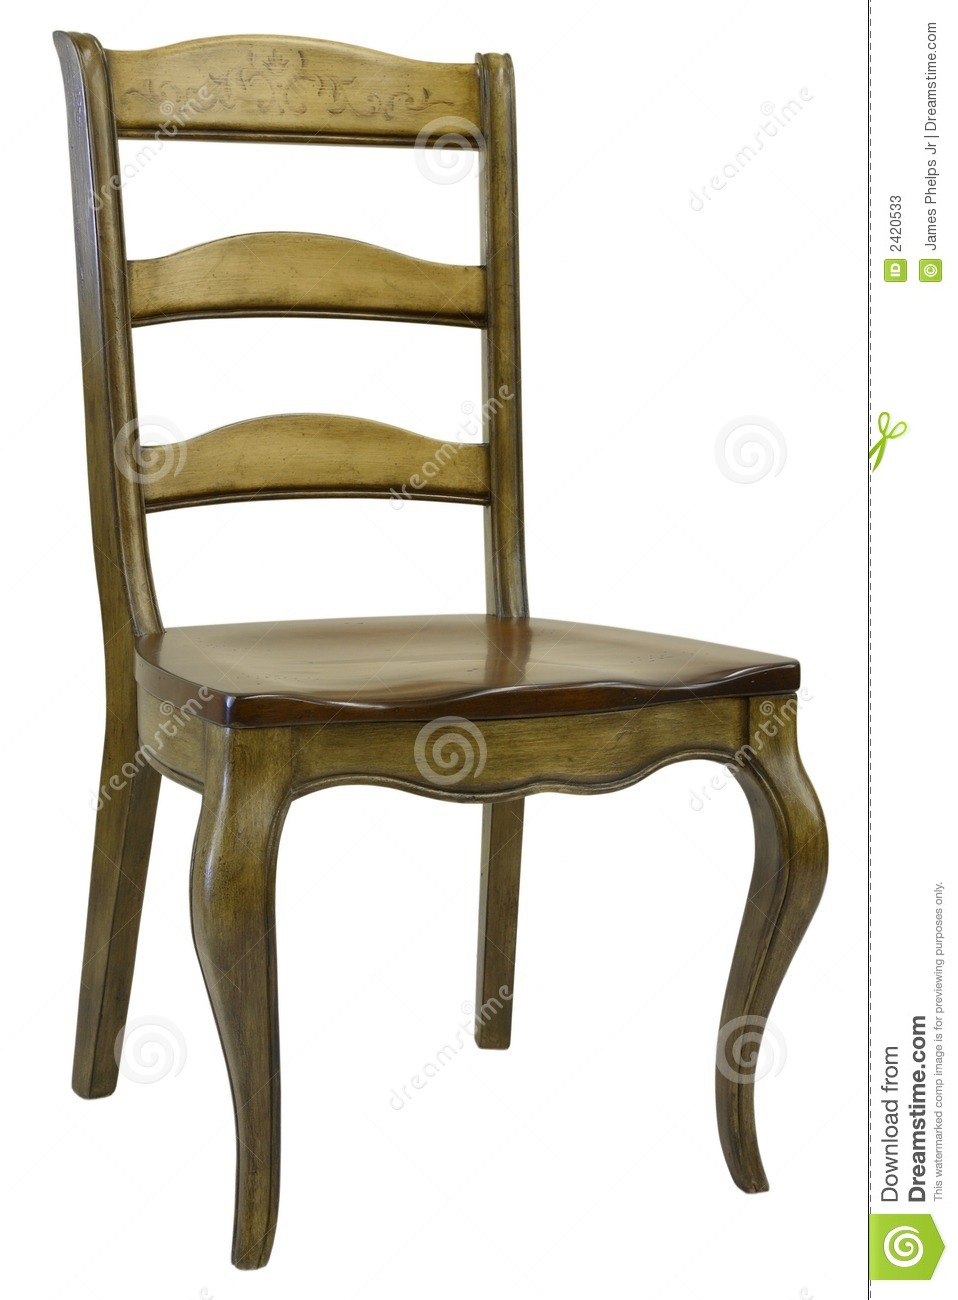 Antique Dining Chair Stock Photos Image 2420533 : antique dining chair 2420533 from www.dreamstime.com size 958 x 1300 jpeg 157kB